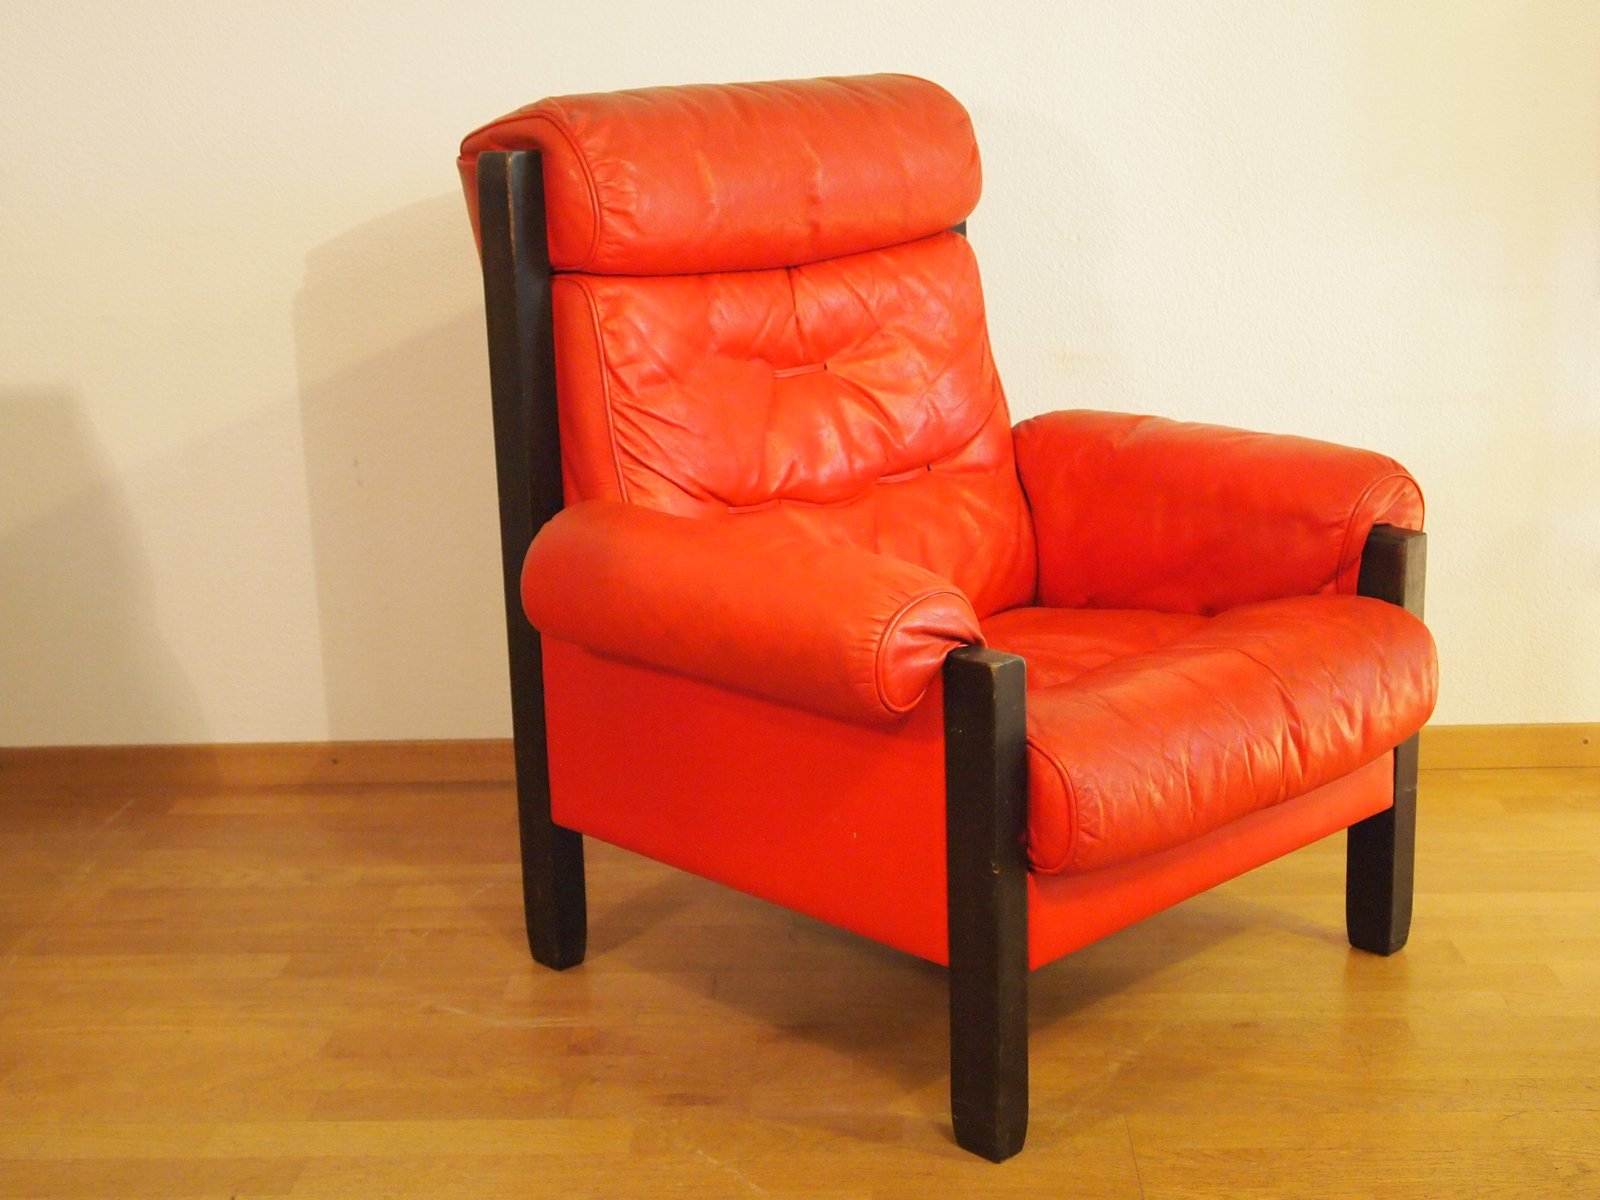 Lovely Vintage Red Leather Armchair From De Sede